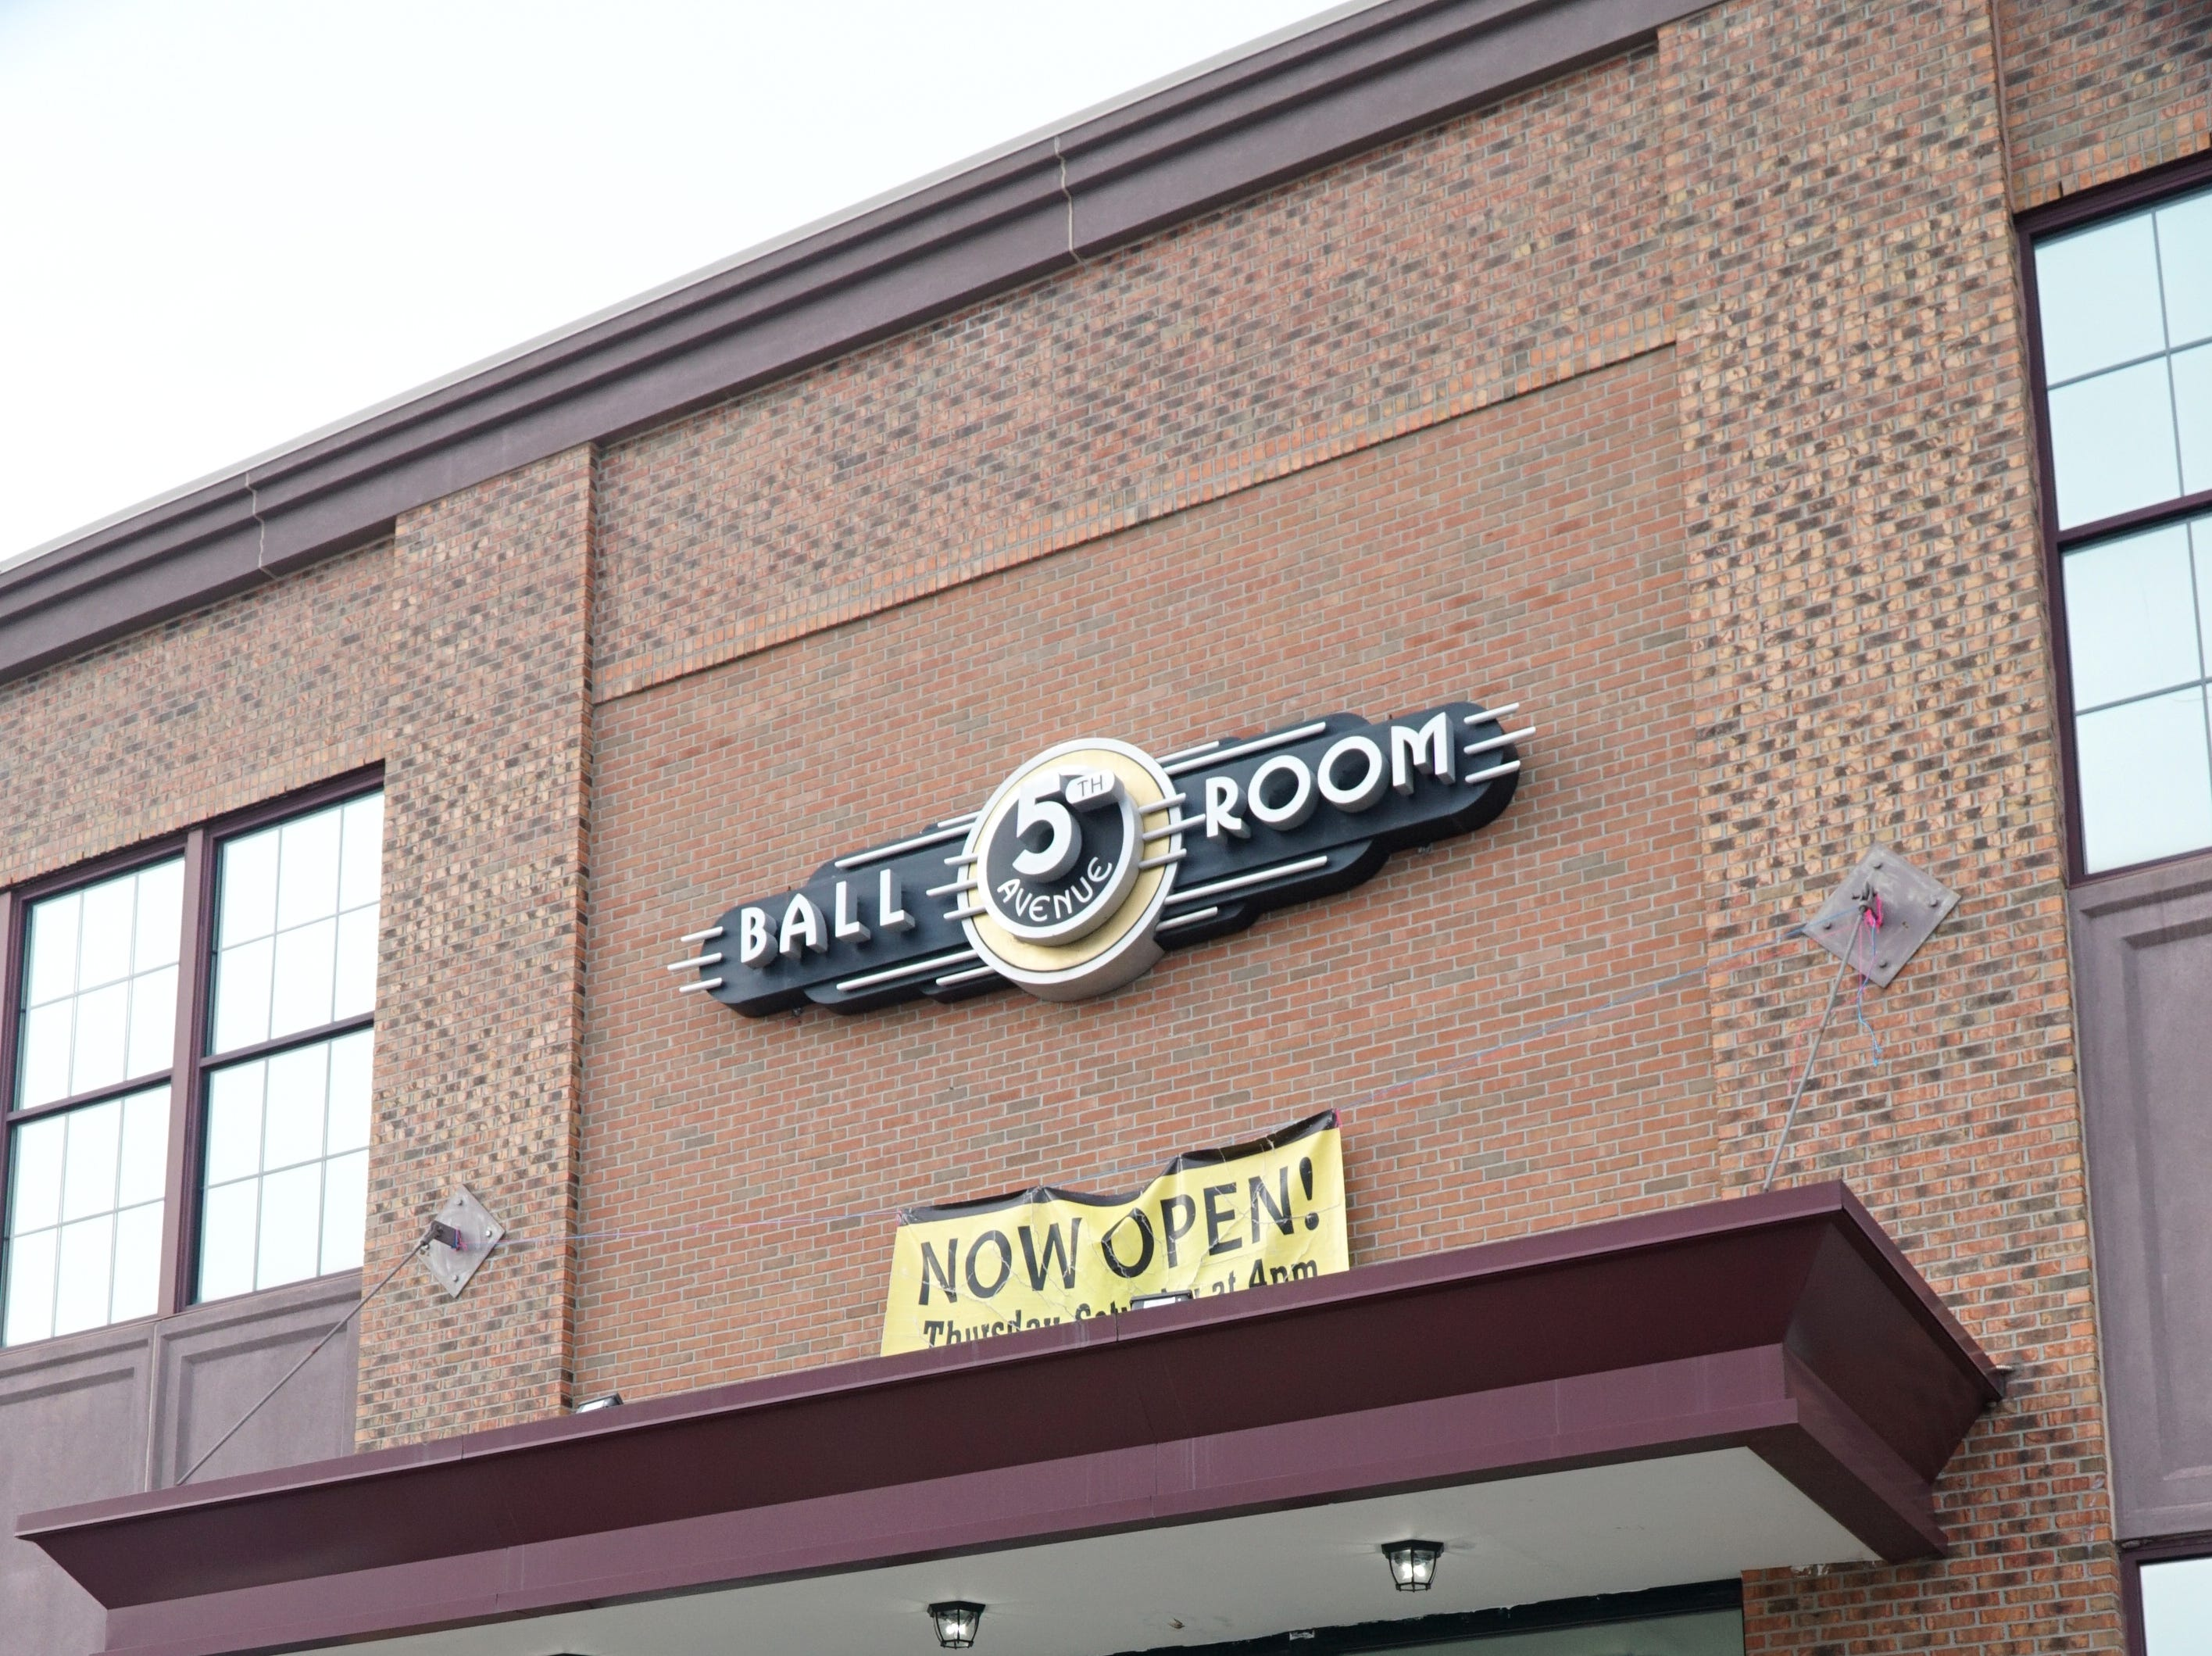 Novi's 5th Avenue Ball Room has re-opened for Thursday through Saturday nights. The pub is located at Novi Road at Trans X Drive.